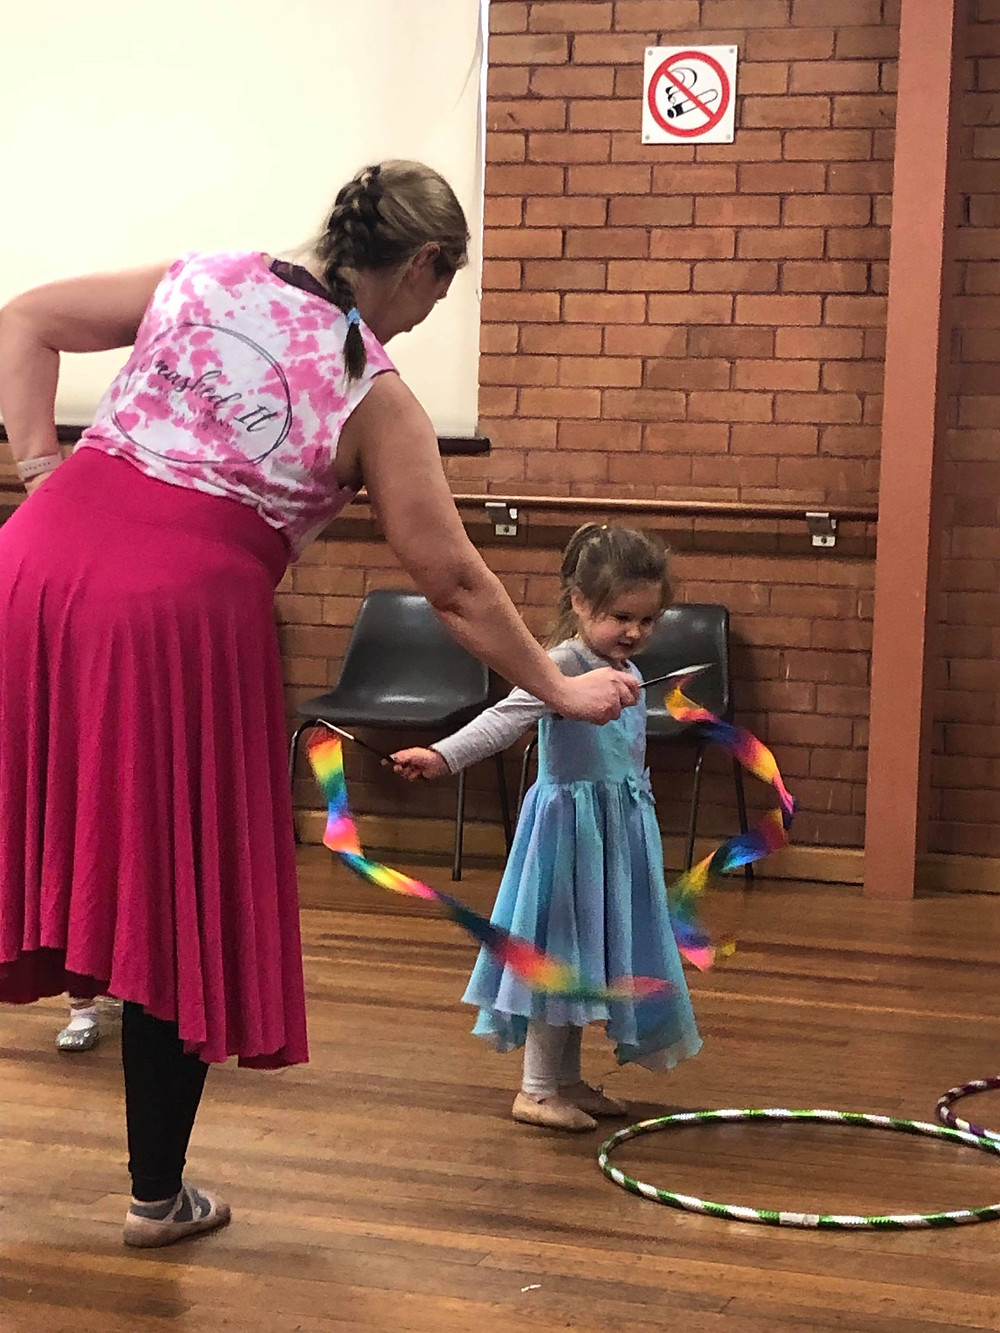 Kinderballet allows me to teach more than dance to my students.